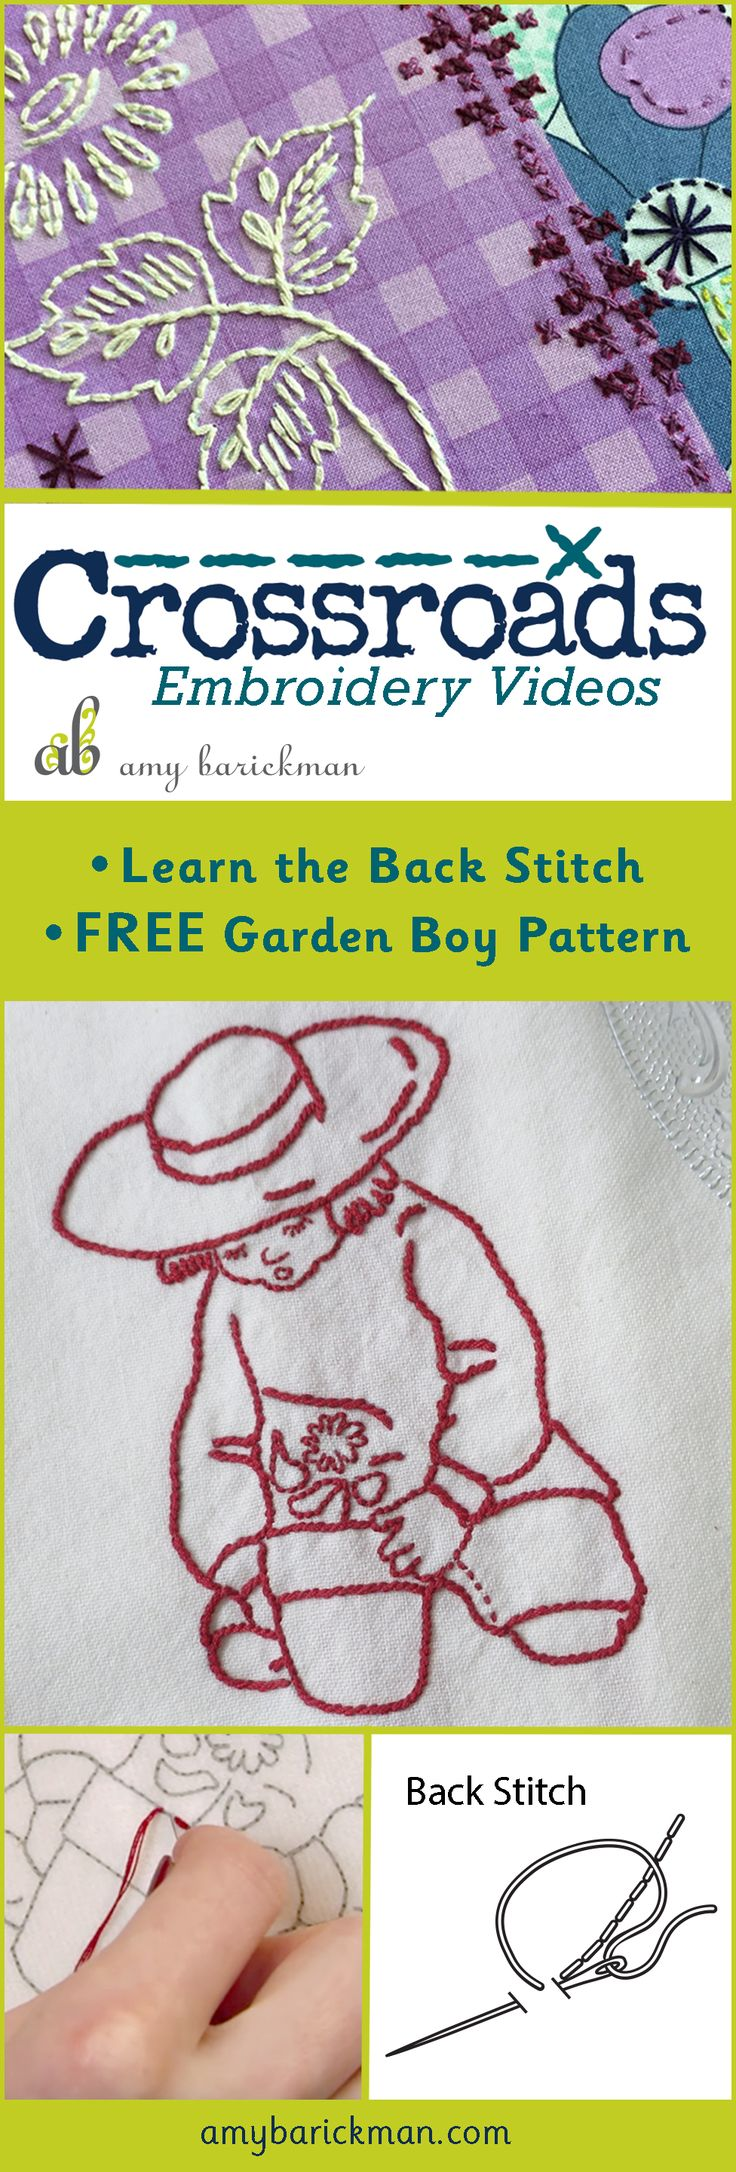 Author Amy Barickman Gives A Video Tutorial On How To Do The Backstitch,  And Includes